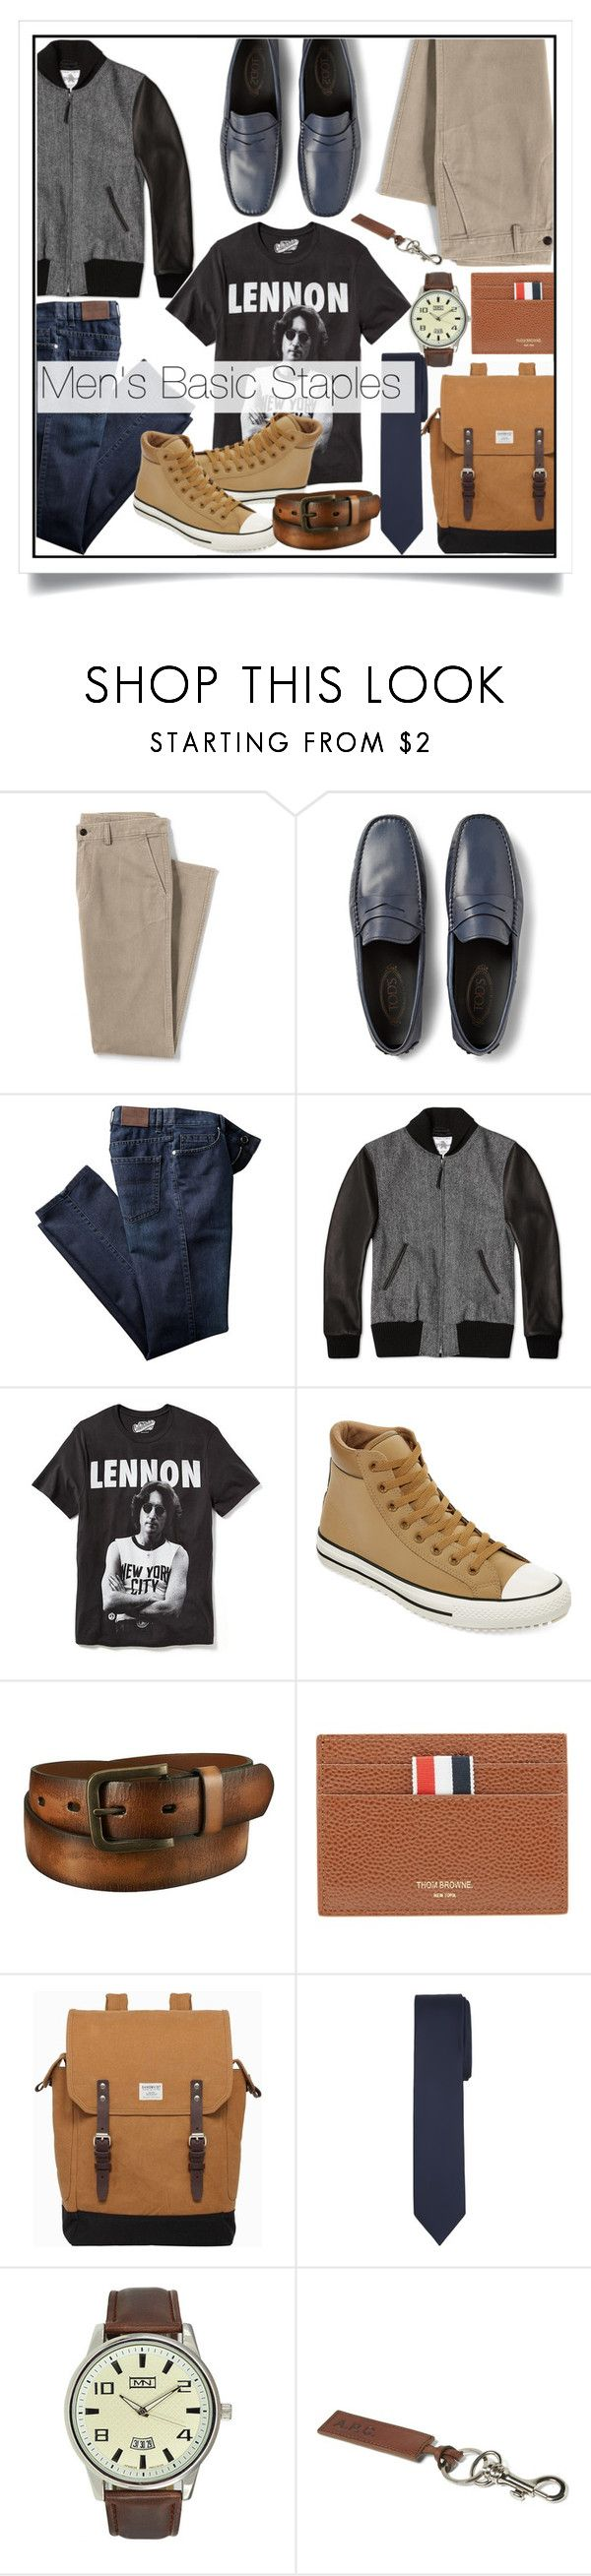 """""""Men's Basic Staples"""" by amira ❤ liked on Polyvore featuring Lands' End, Tod's, Golden Bear, Old Navy, Converse, Uniqlo, Thom Browne, Sandqvist, MN Watches and A.P.C."""